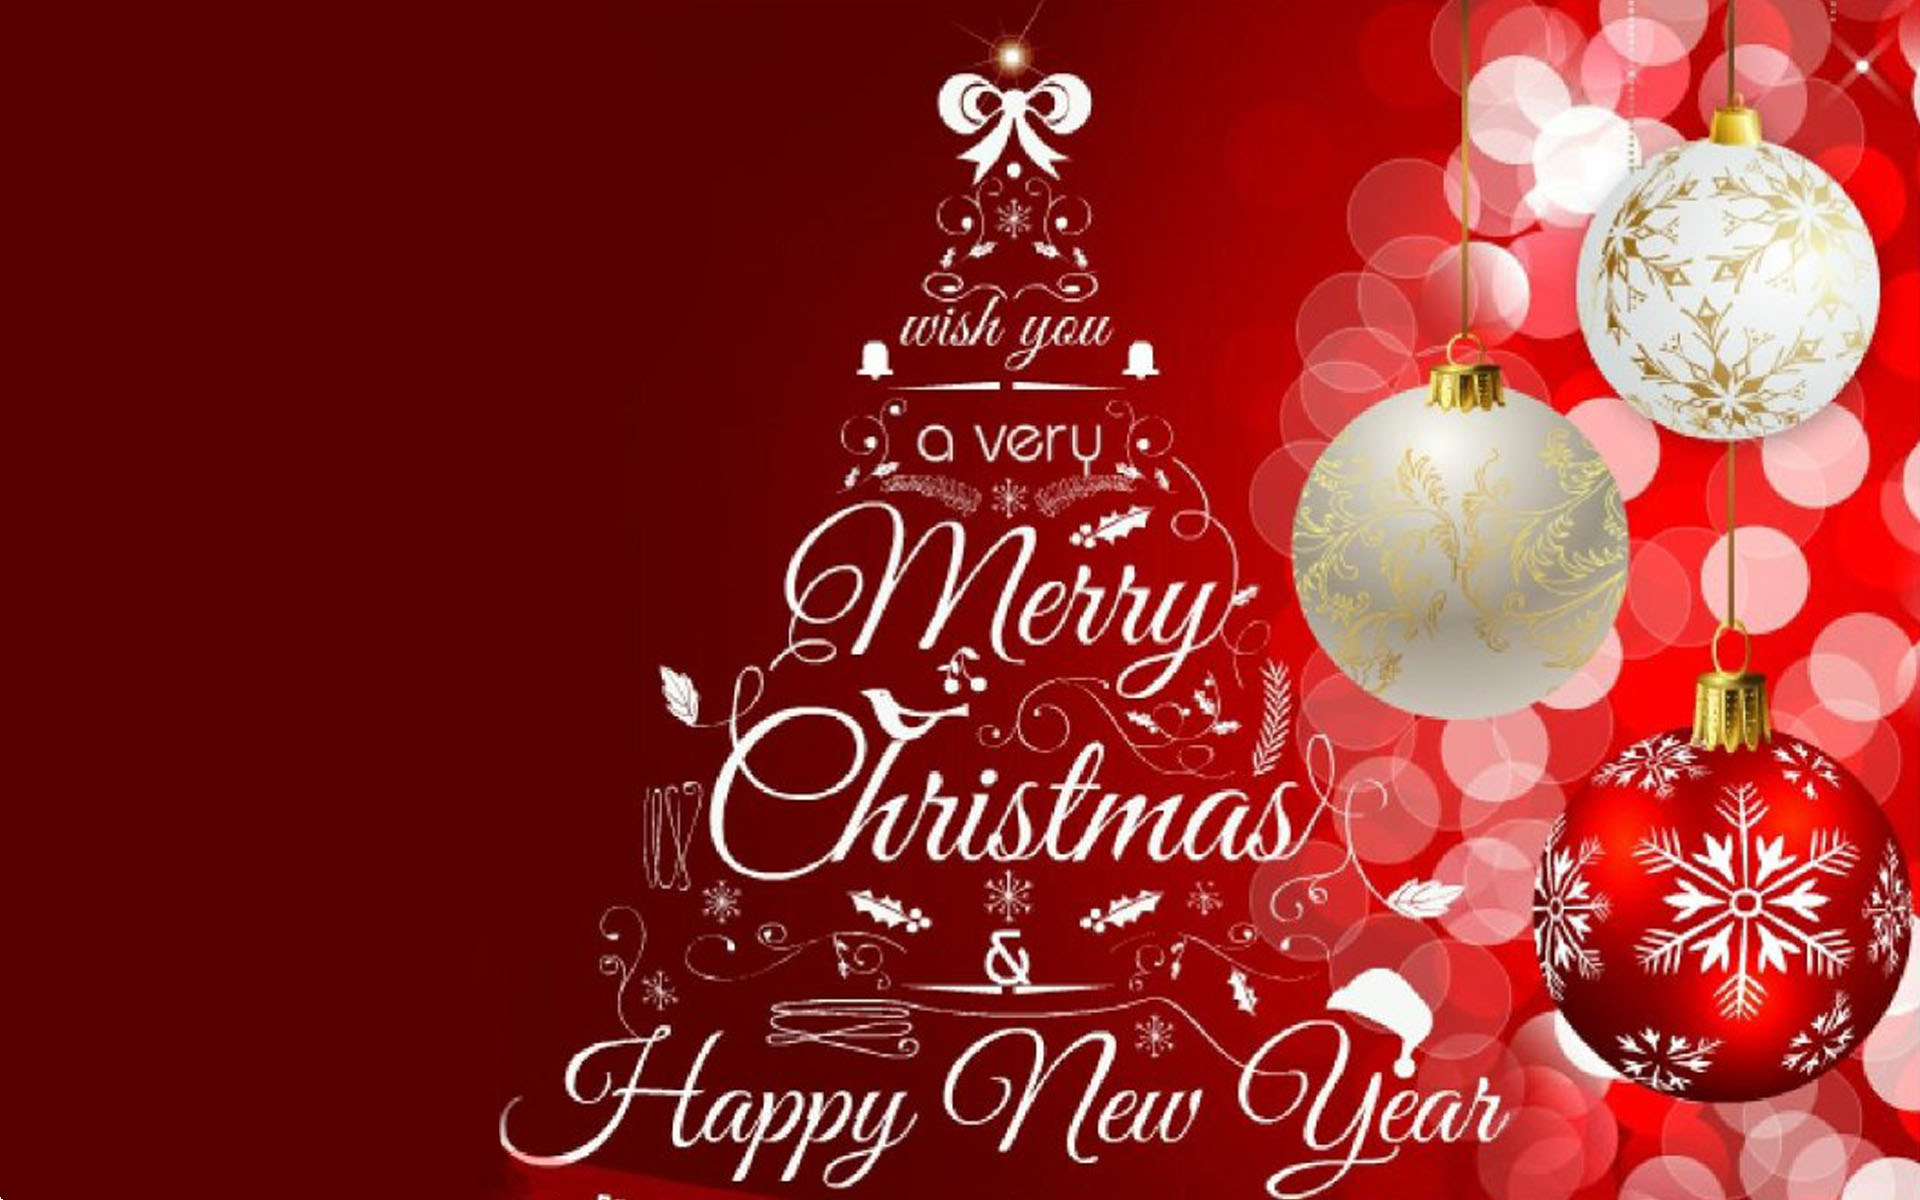 Greeting Card Merry Christmas And Happy New Year 2020 Images 1920x1200